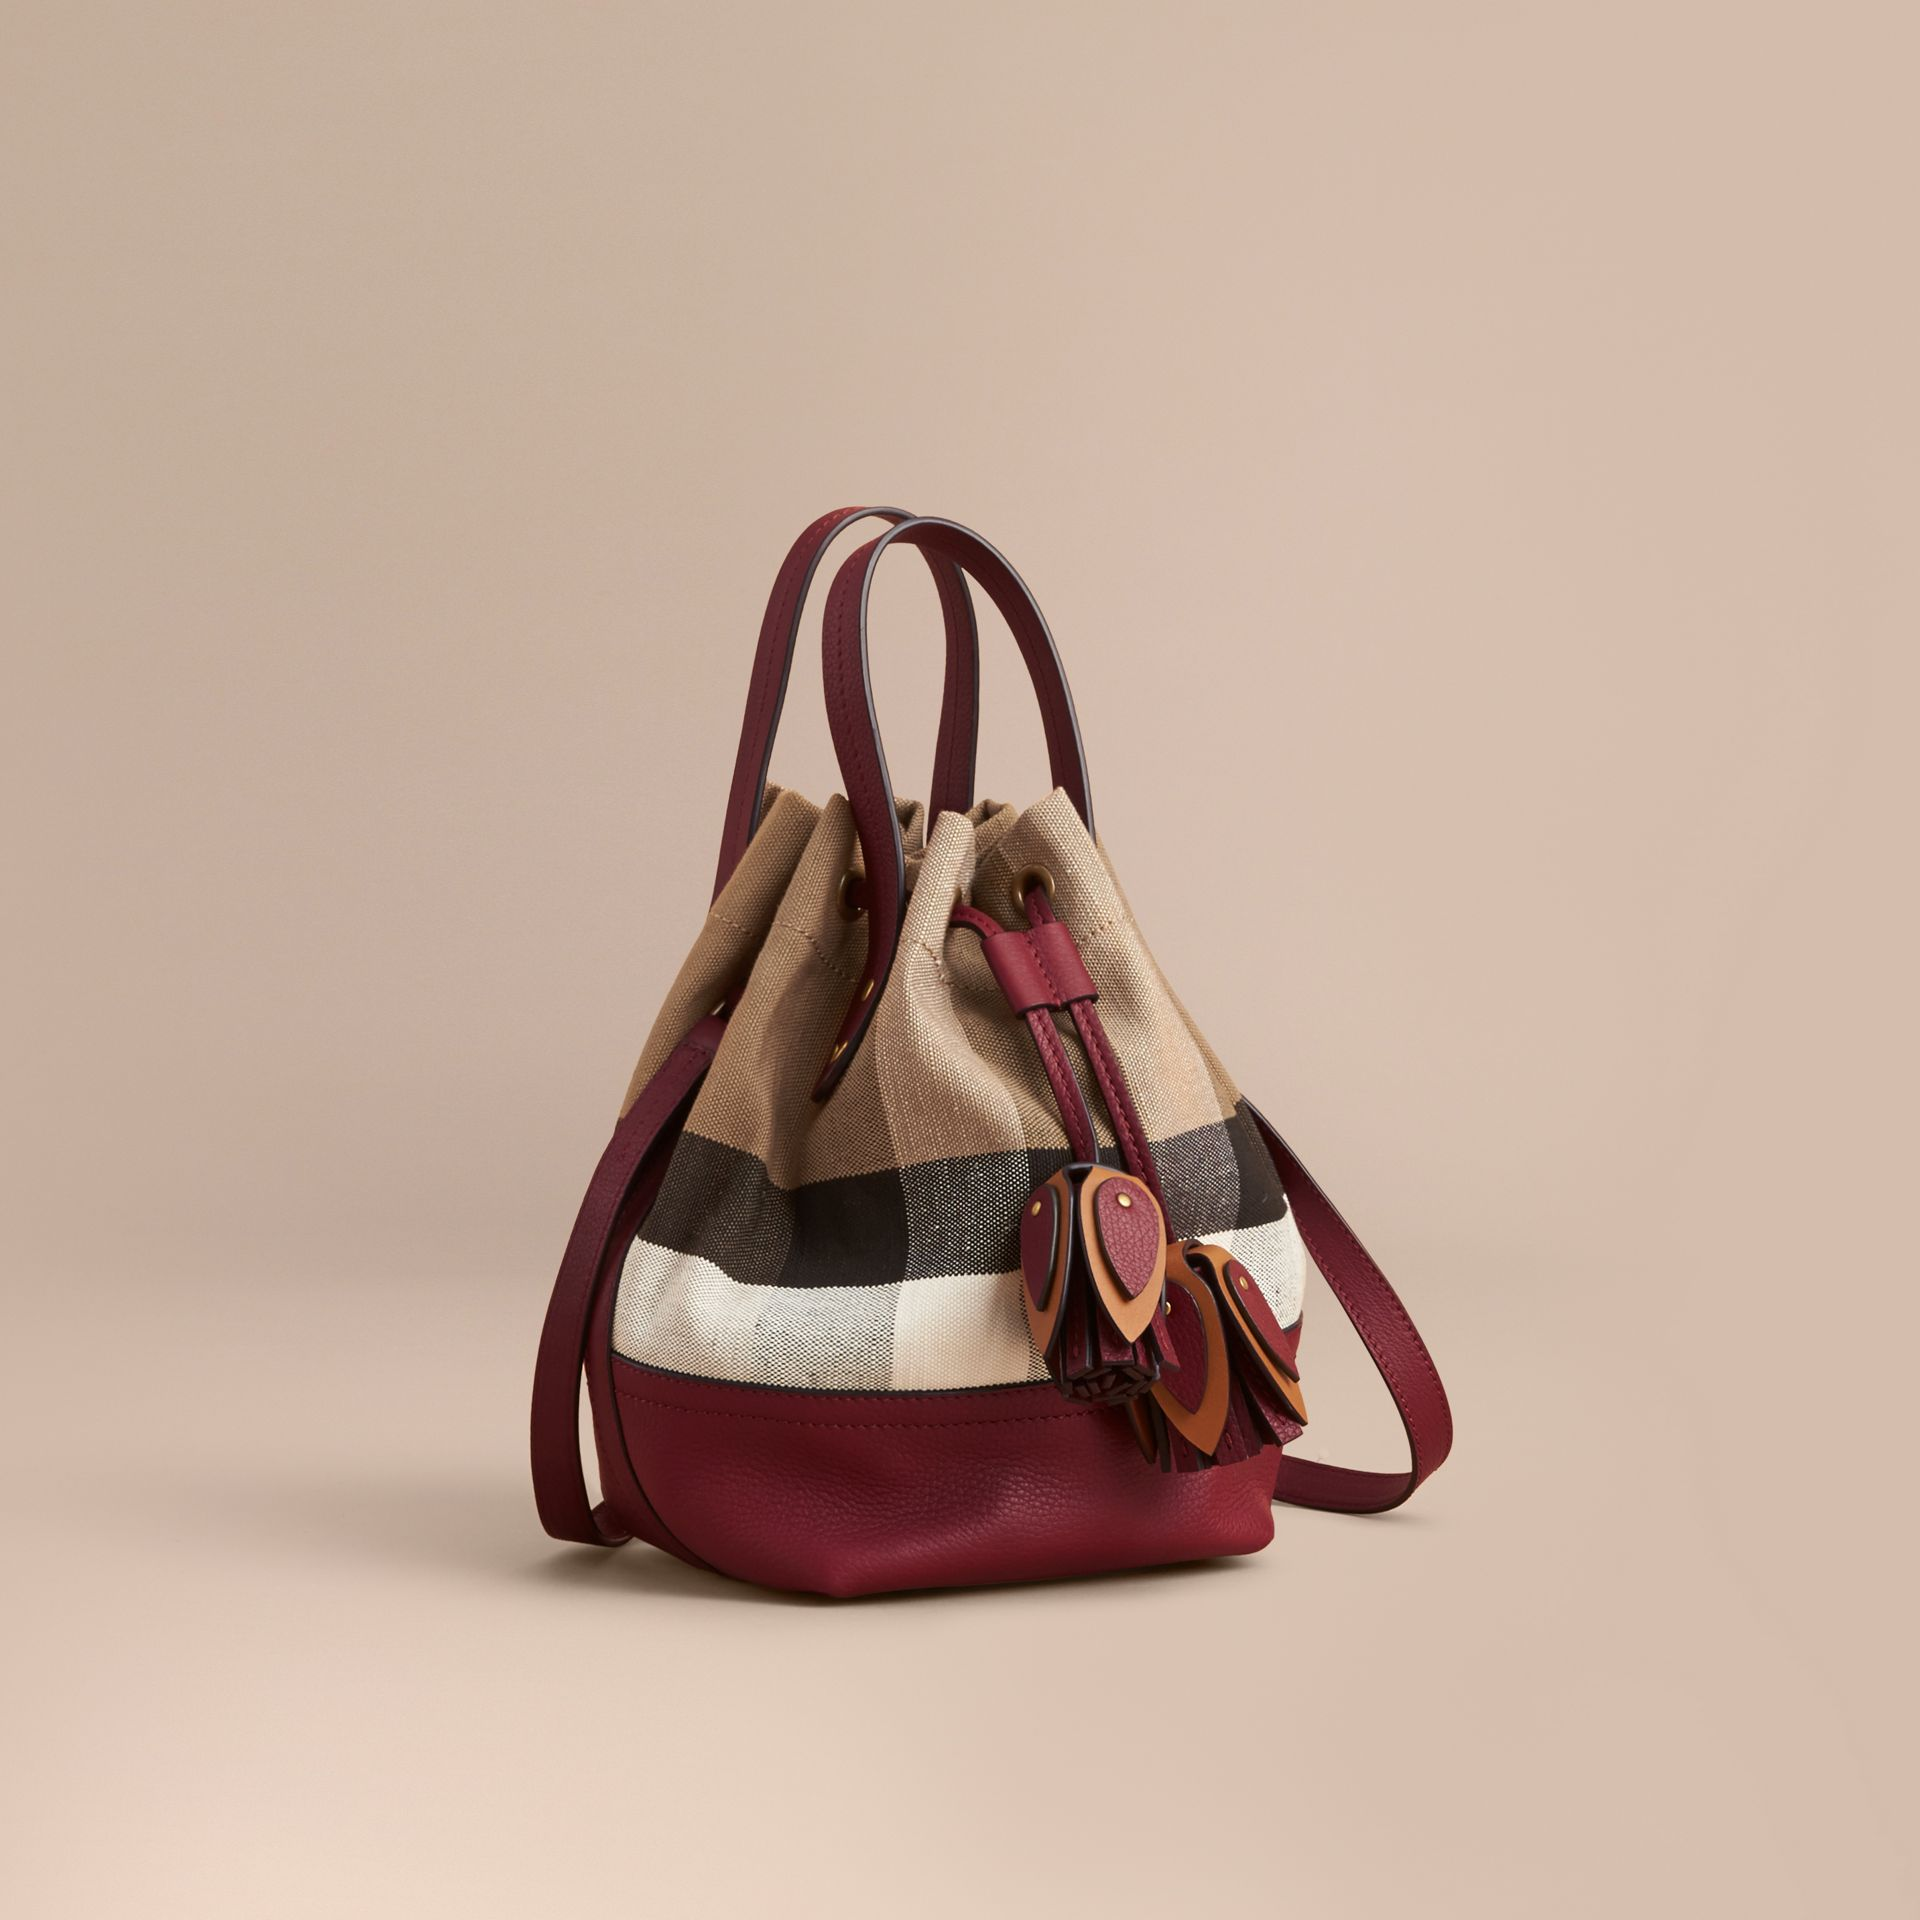 Small Canvas Check and Leather Bucket Bag in Burgundy Red - Women | Burberry Singapore - gallery image 1